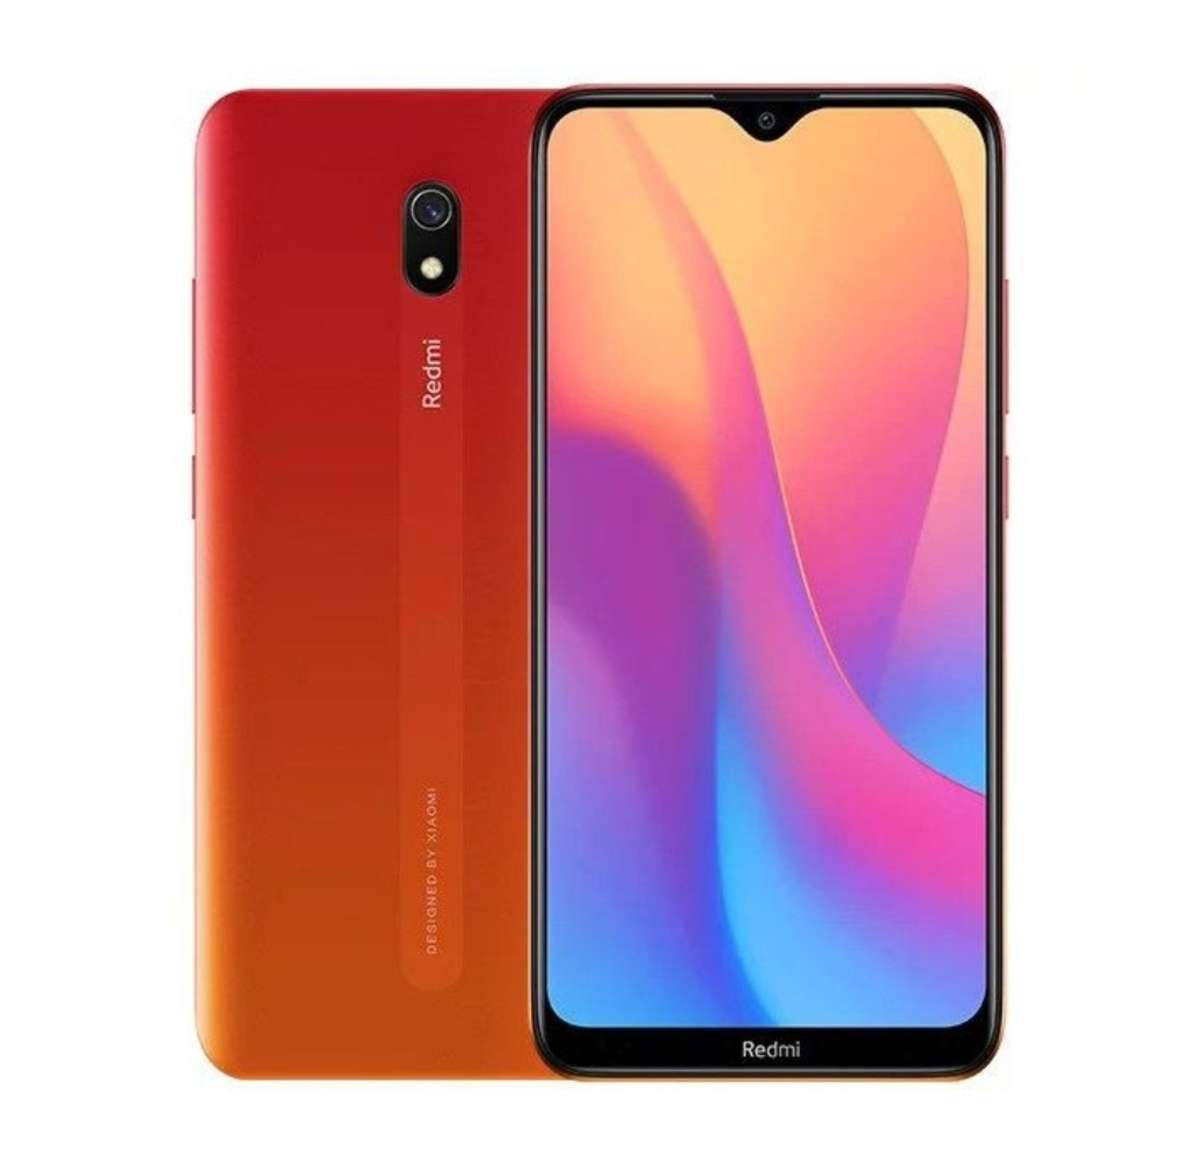 Xiaomi Redmi 8A, Redmi 8A, Xiaomi Redmi 8A price in Nigeria, xiaomi redmi 8a specs and price in Nigeria, price of xiaomi redmi 8a in nigeria, how much is the price of Xiaomi redmi 8a in nigeria, Xiaomi Redmi 8a specs, Redmi 8a price, Xiaomi Redmi 8a and price in Nigeria, xiaomi Redmi 8a price in Jumia,